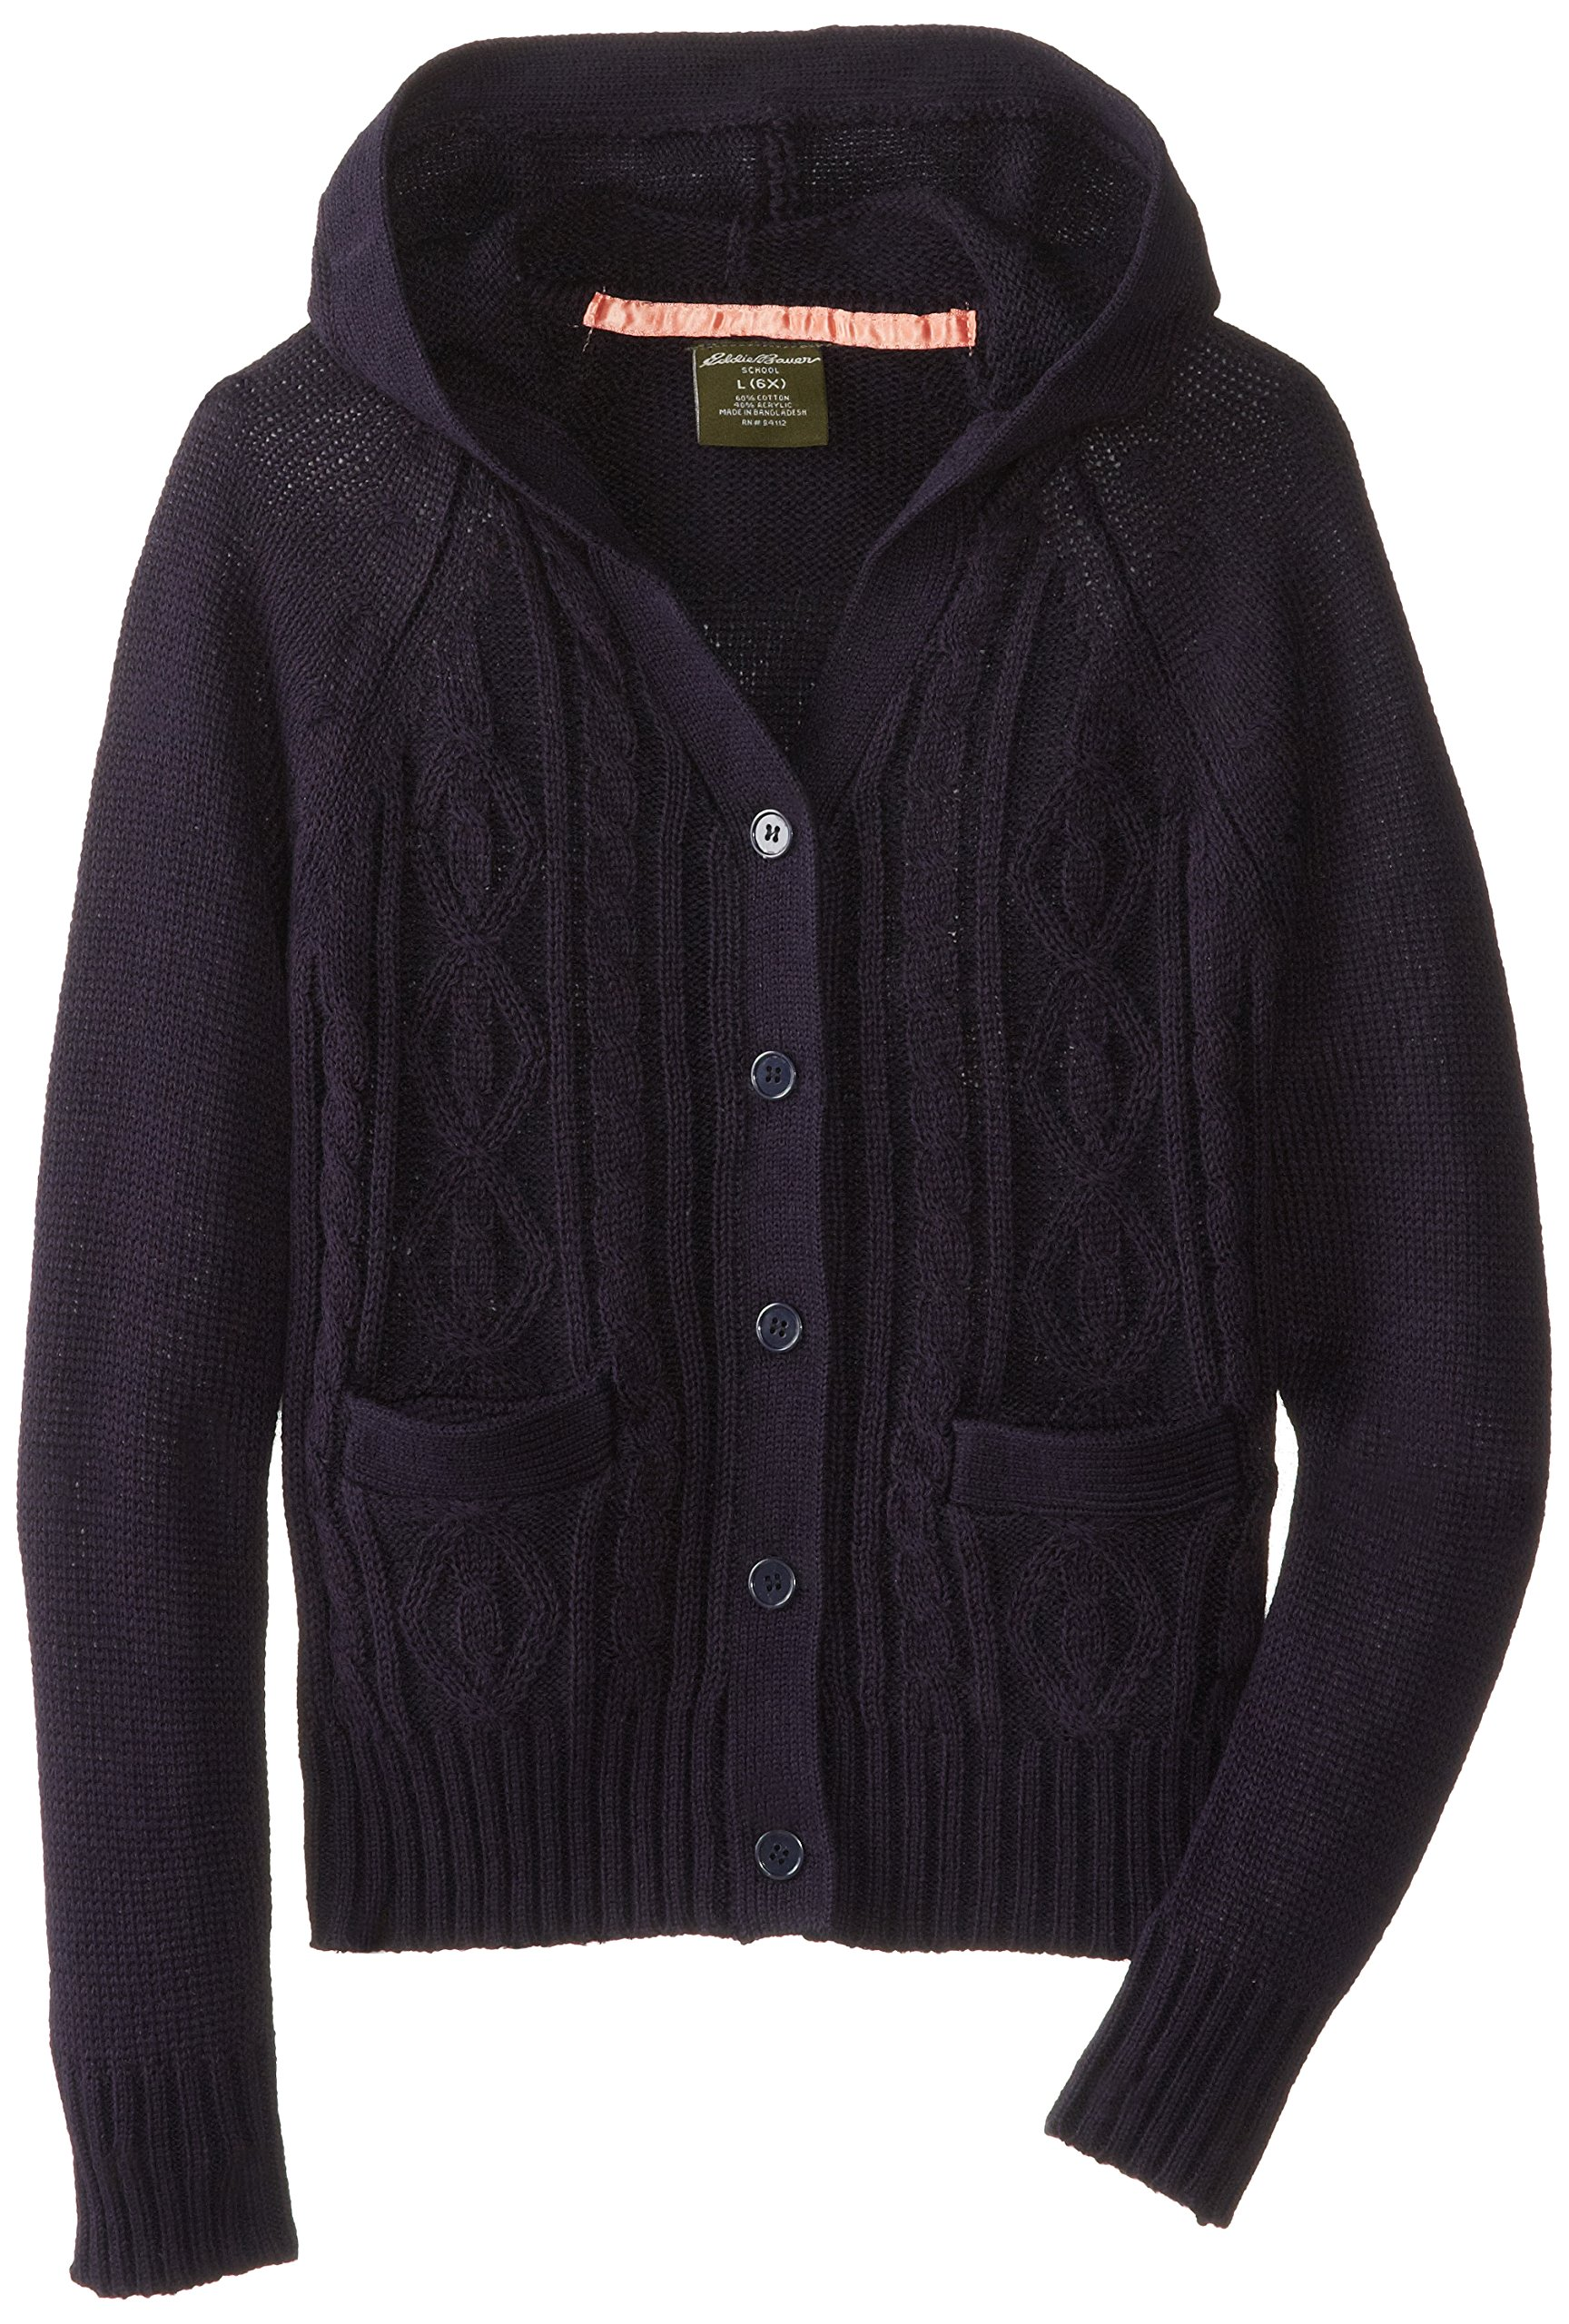 Eddie Bauer Girls' Sweater (More Styles Available), Warm Navy, 4